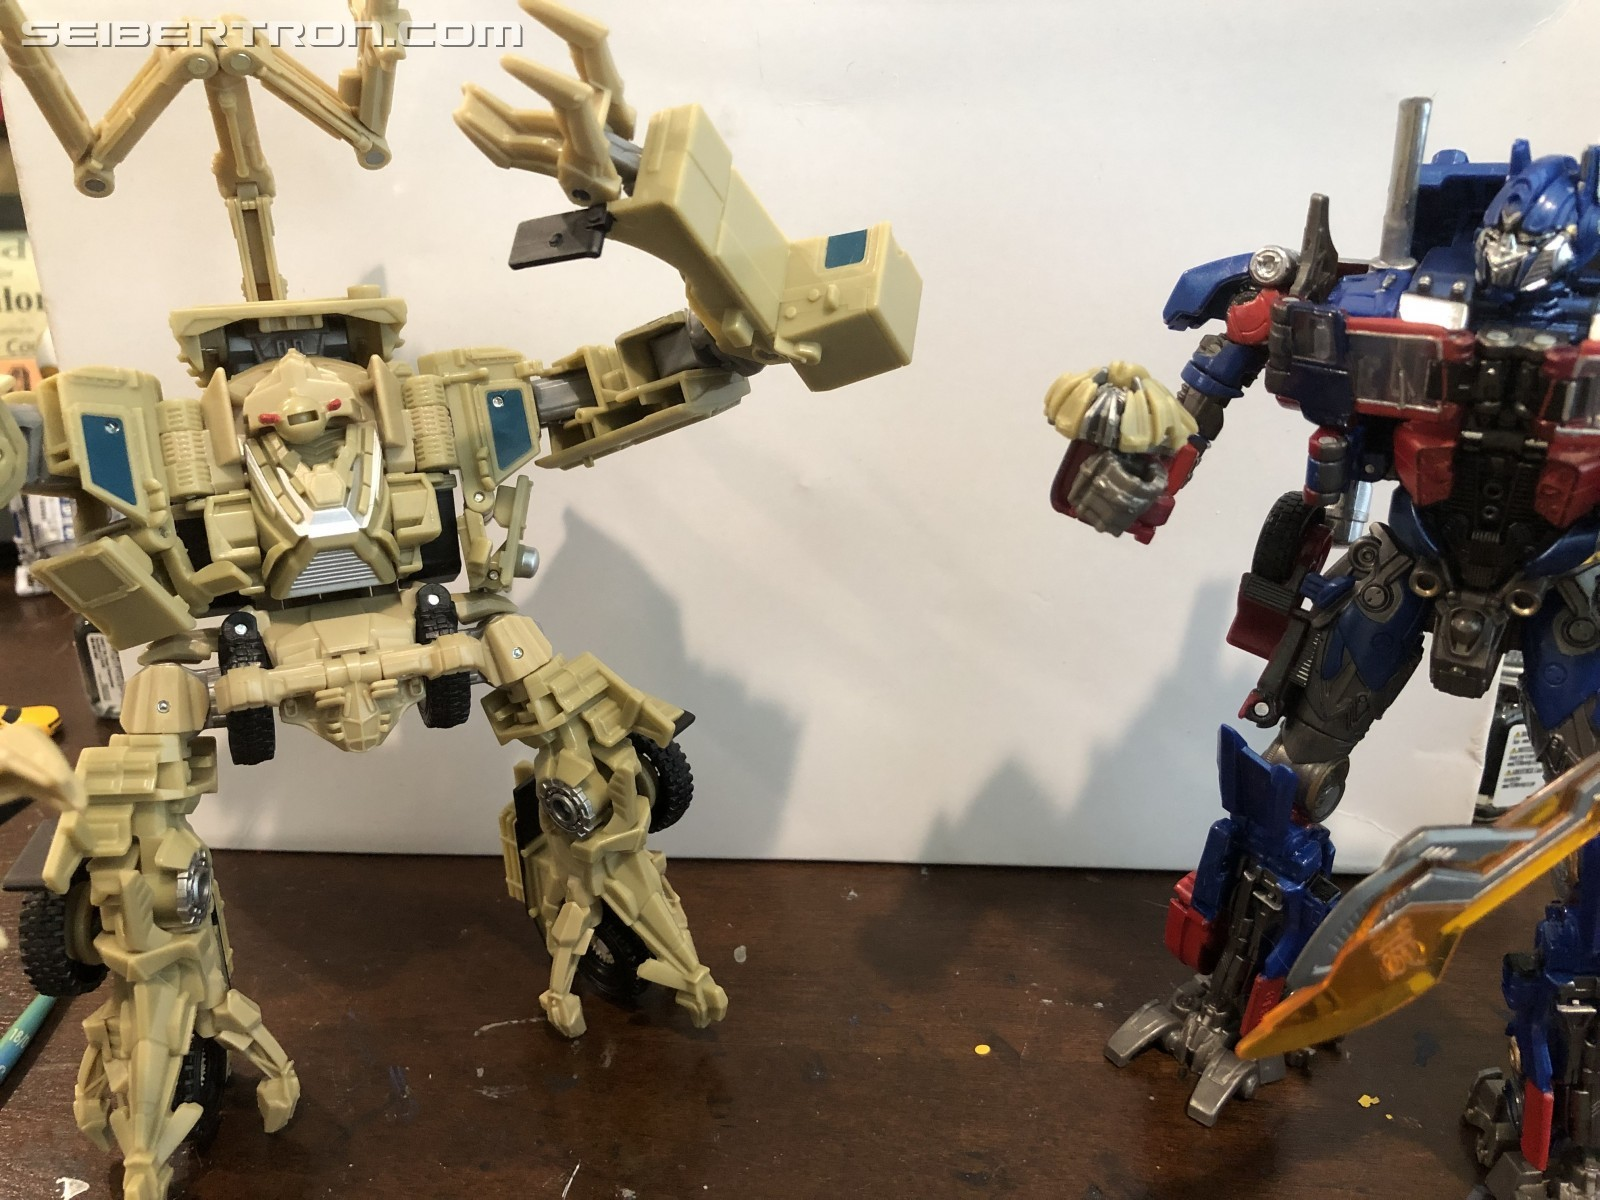 Transformers News: Image of Studio Series Bonecrusher Undocumented Decapitation Feature